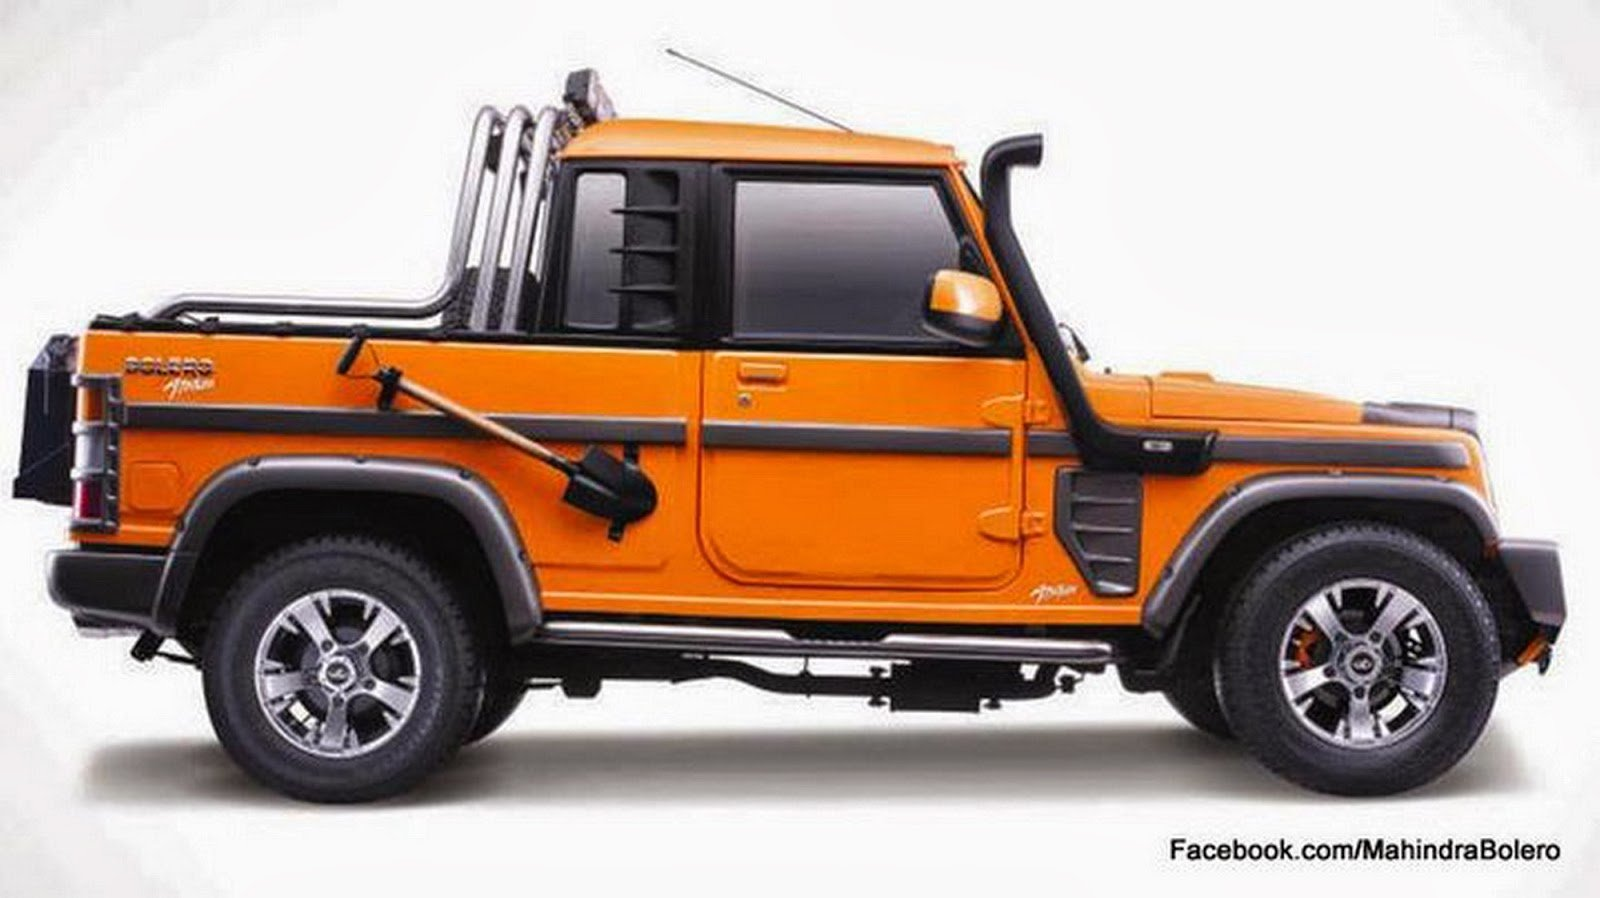 Latest Mahindra Bolero Wallpaper 2014 Just Welcome To Automotive Free Download Original 1024 x 768